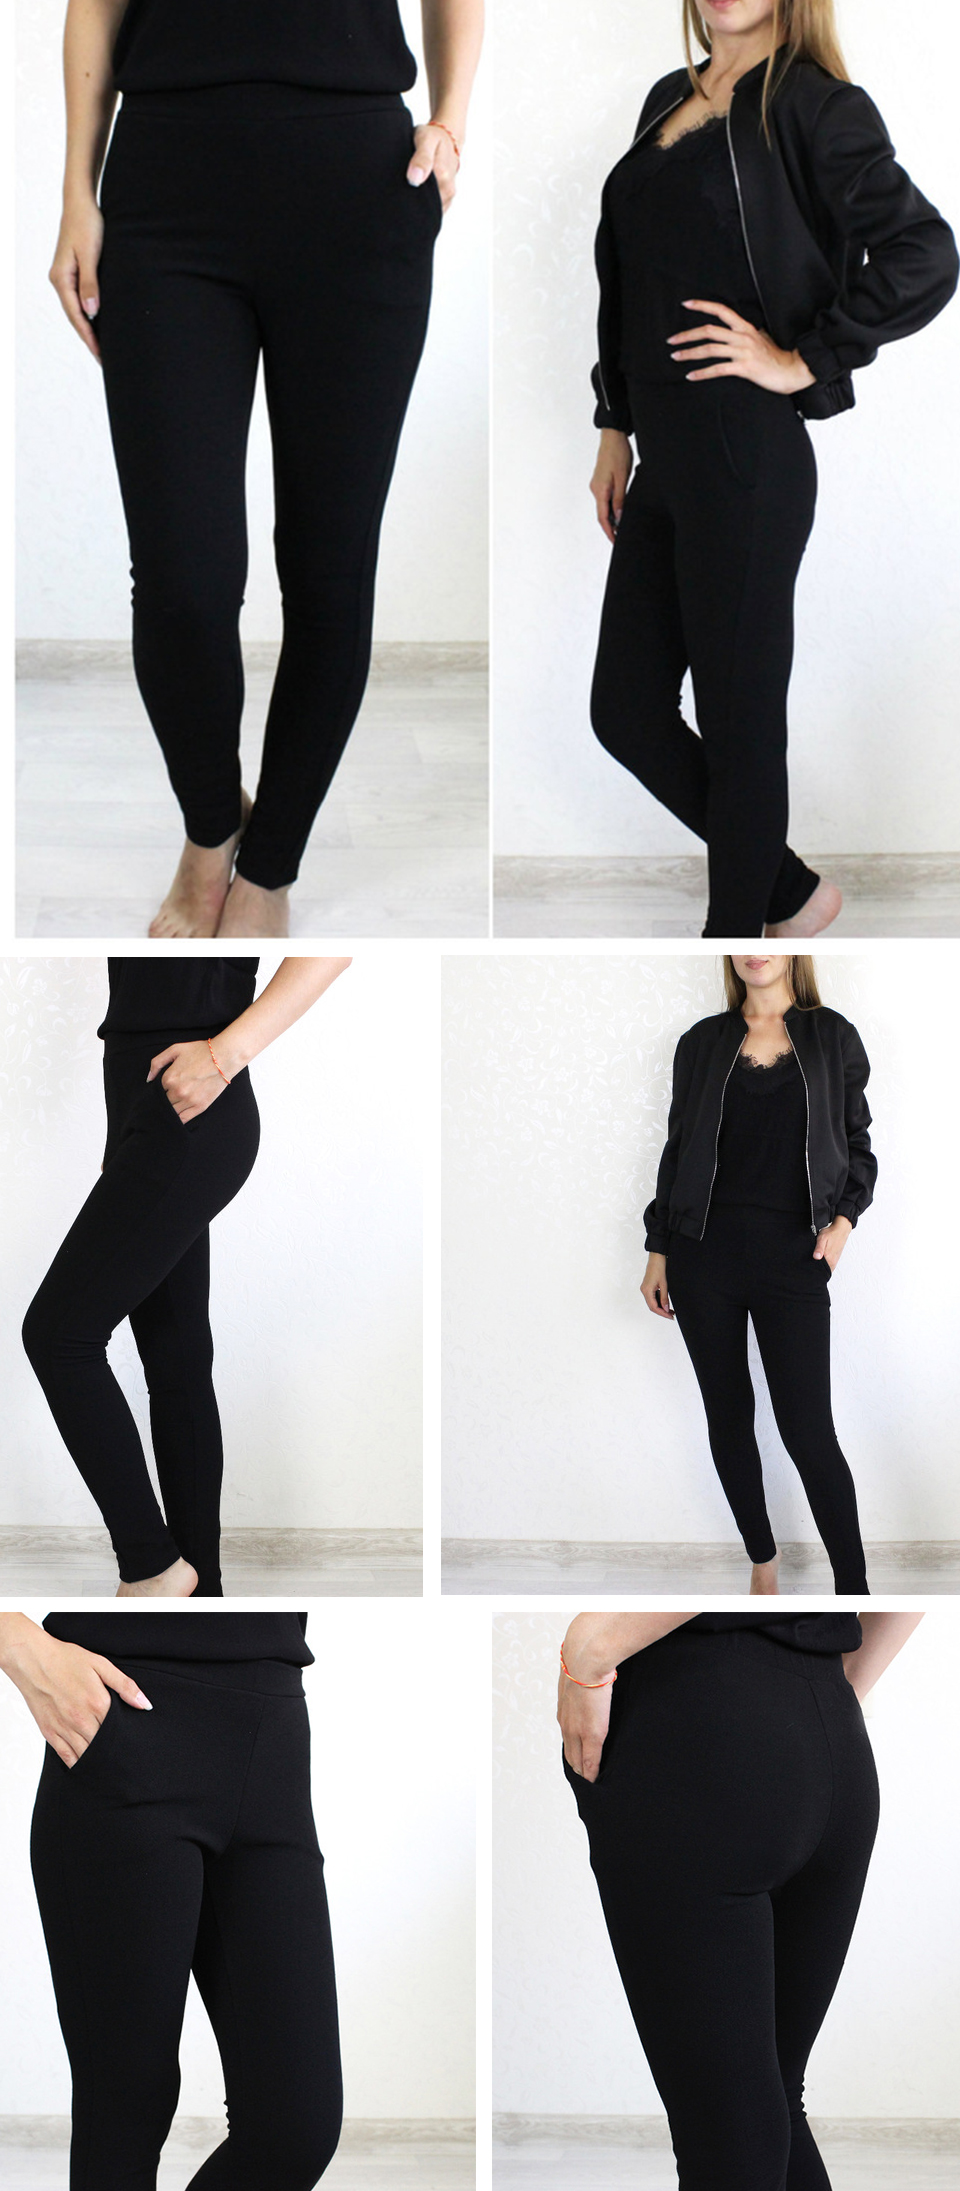 SHEIN Elastic Waist Mid Waist Skinny Trousers Autumn Office Lady Elegant Slim Fit Vertical Women Pencil Pants 4